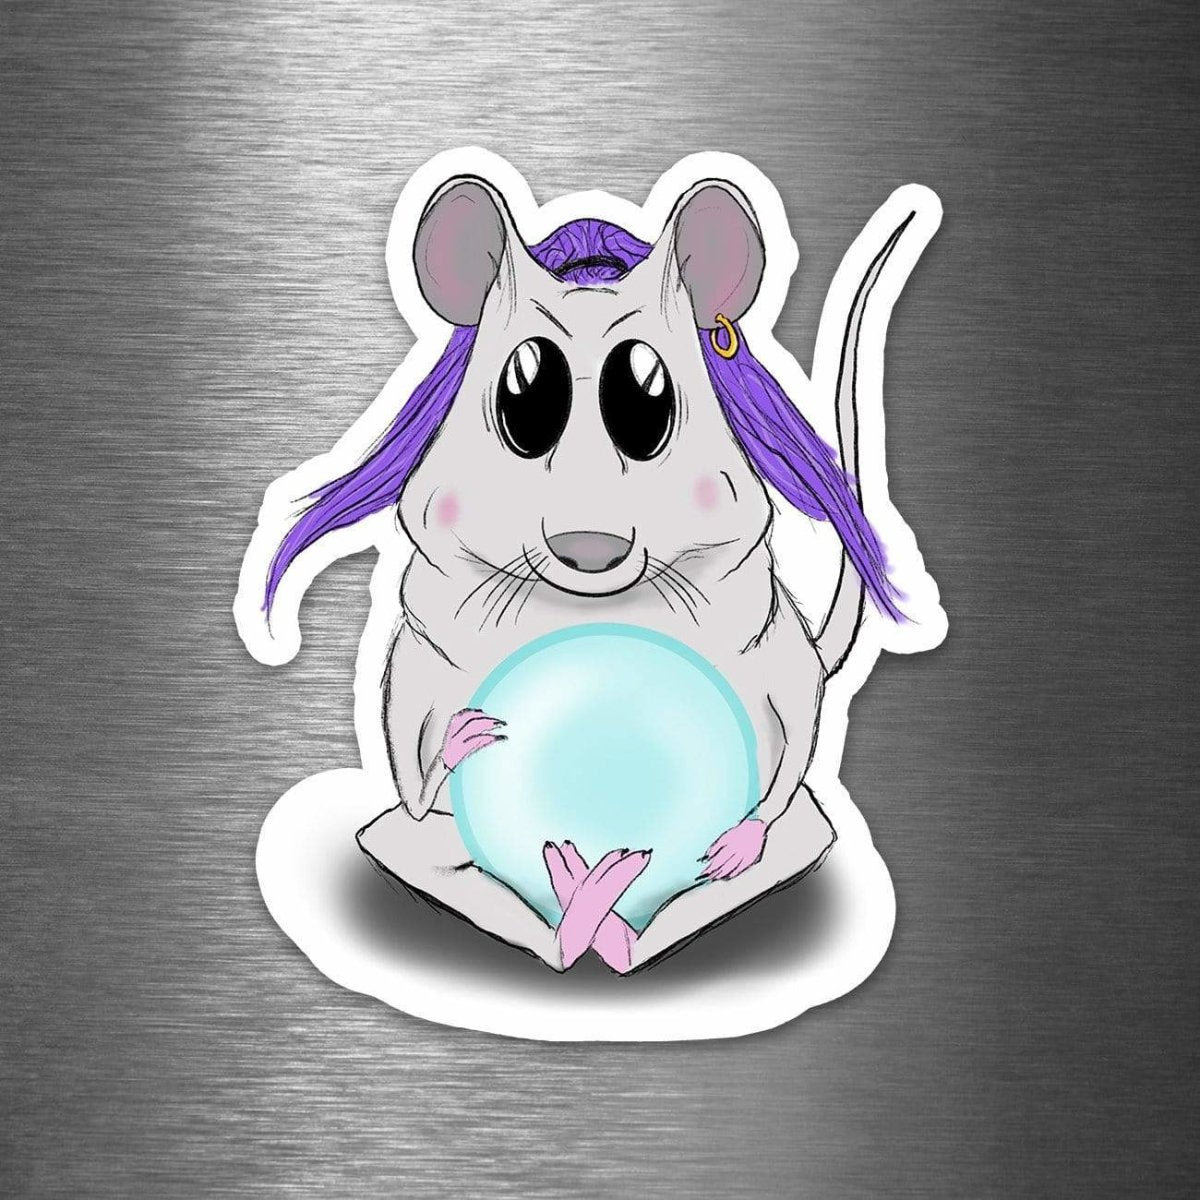 Gypsy Mouse - Vinyl Sticker - Dan Pearce Sticker Shop